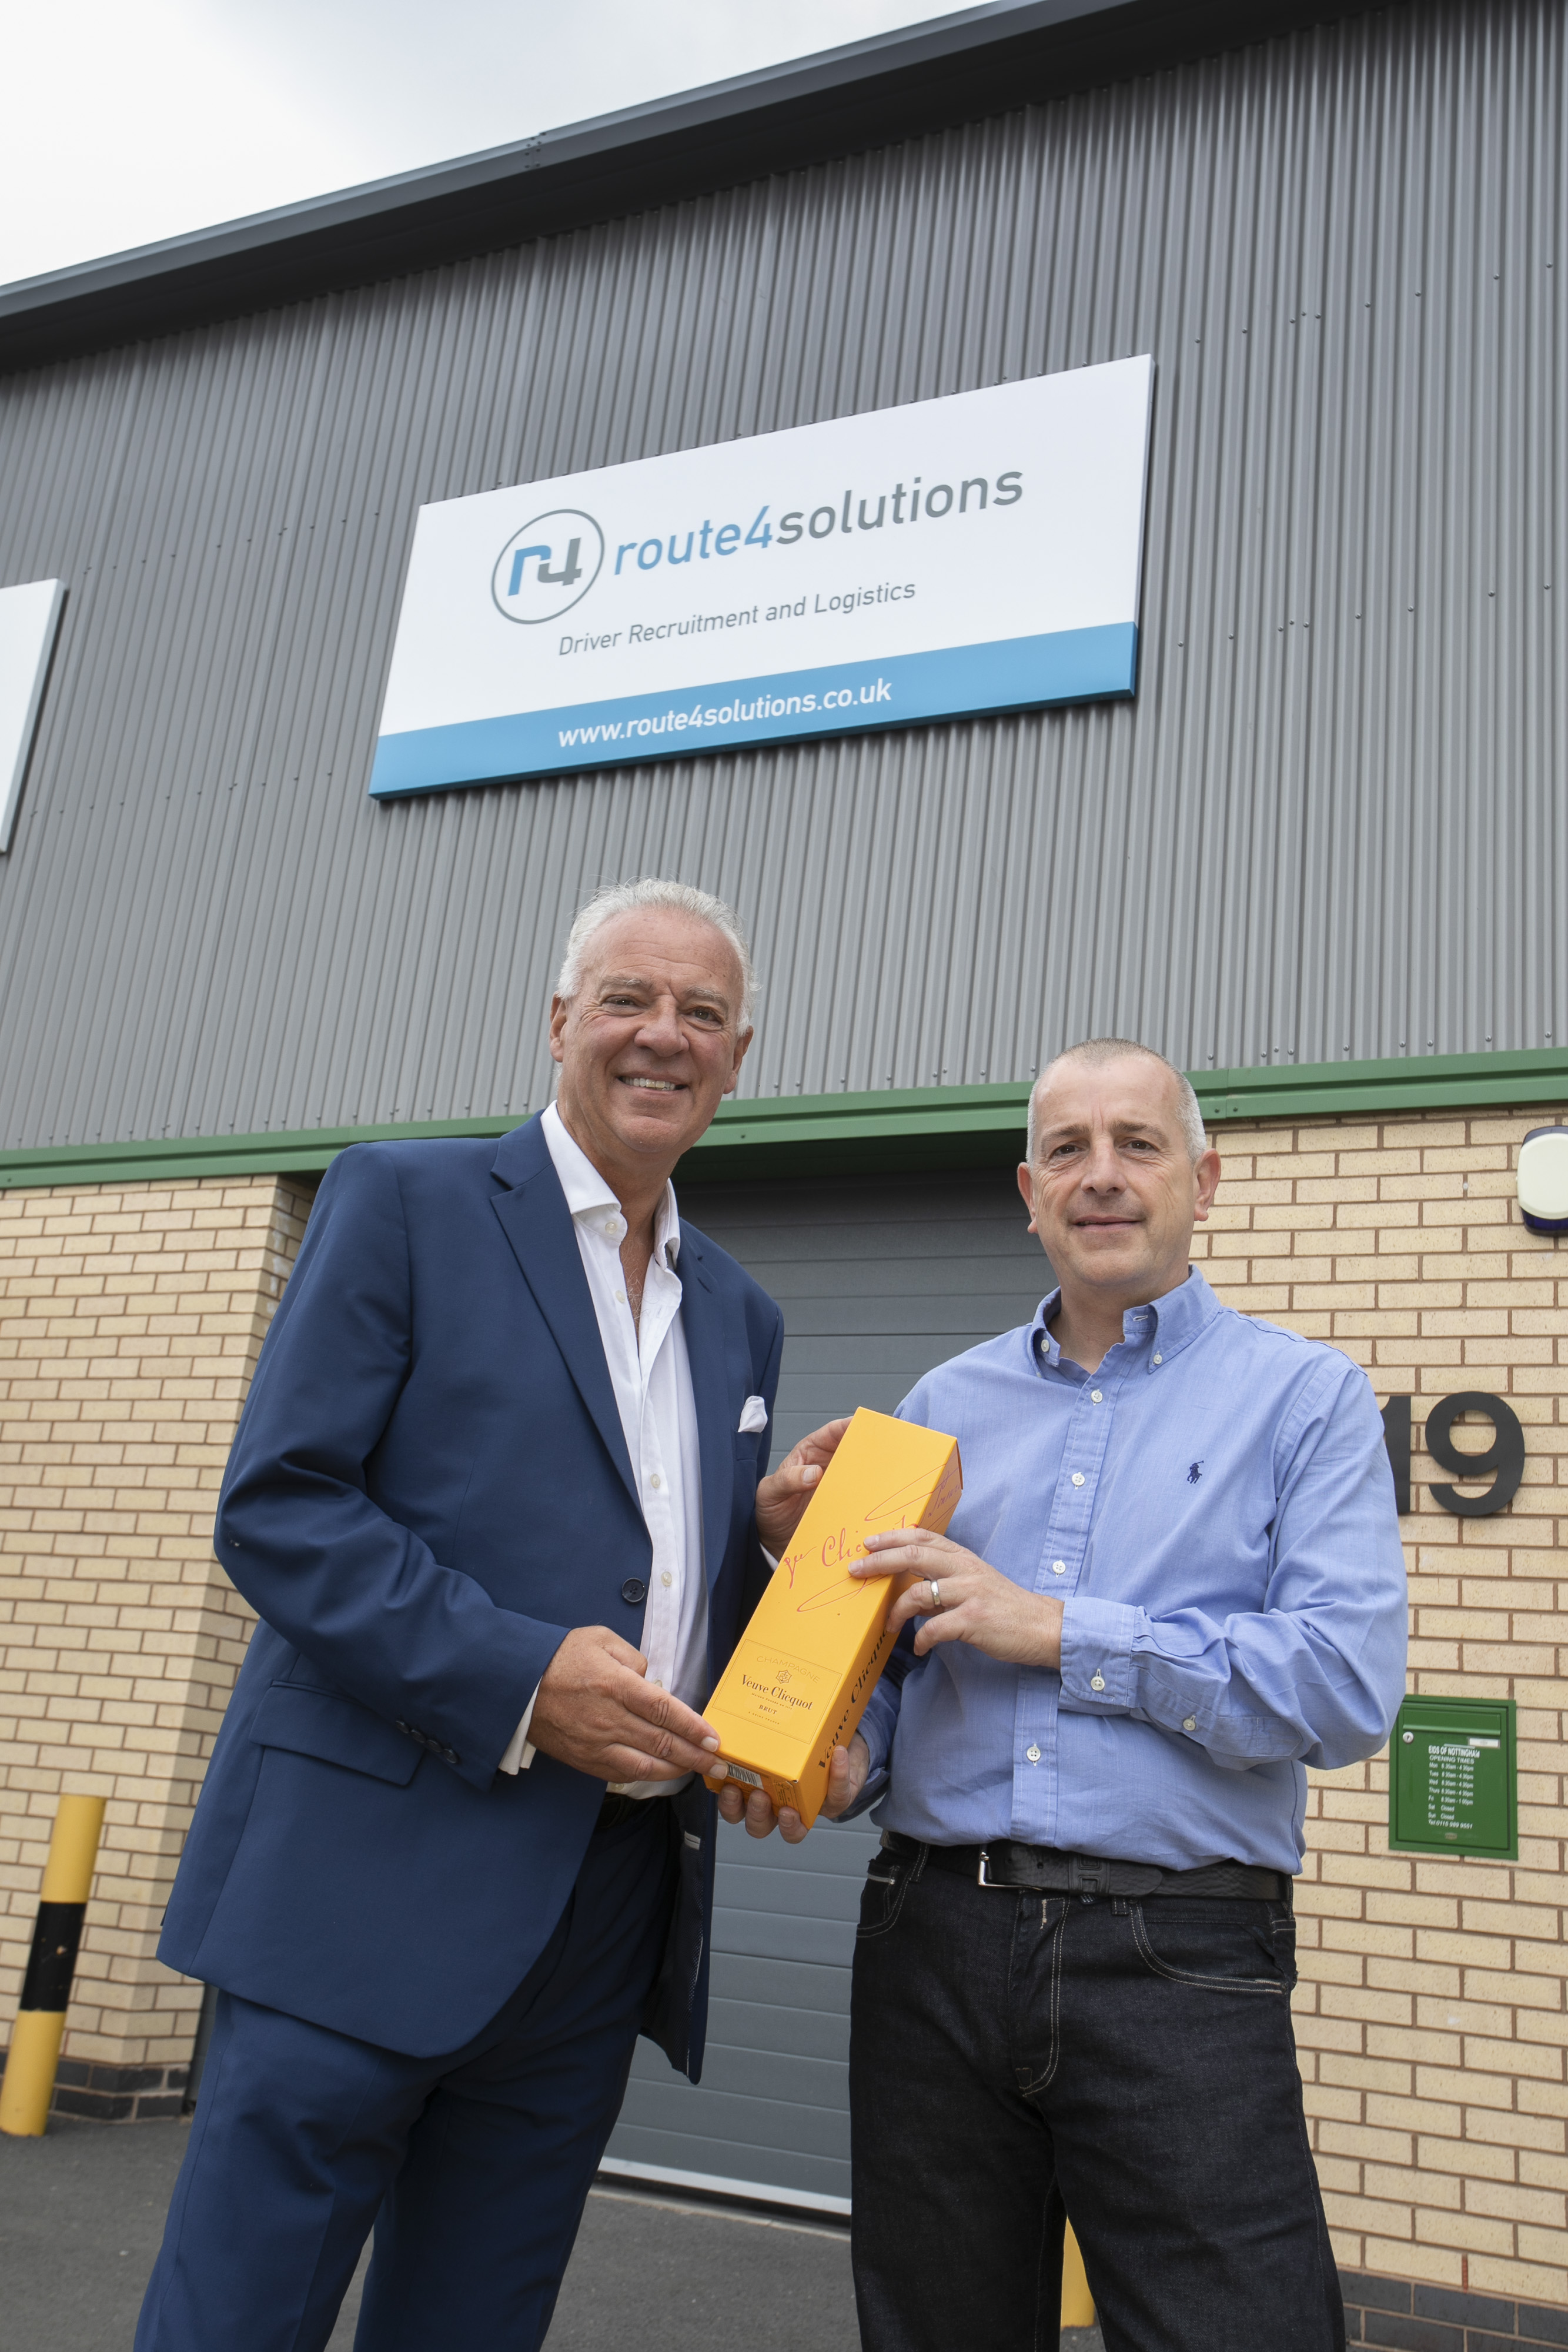 RUSHCLIFFE COUNCIL LEADER CELEBRATES SUCCESS OF COMPANY MOVE TO FLAGSHIP BUSINESS PARK